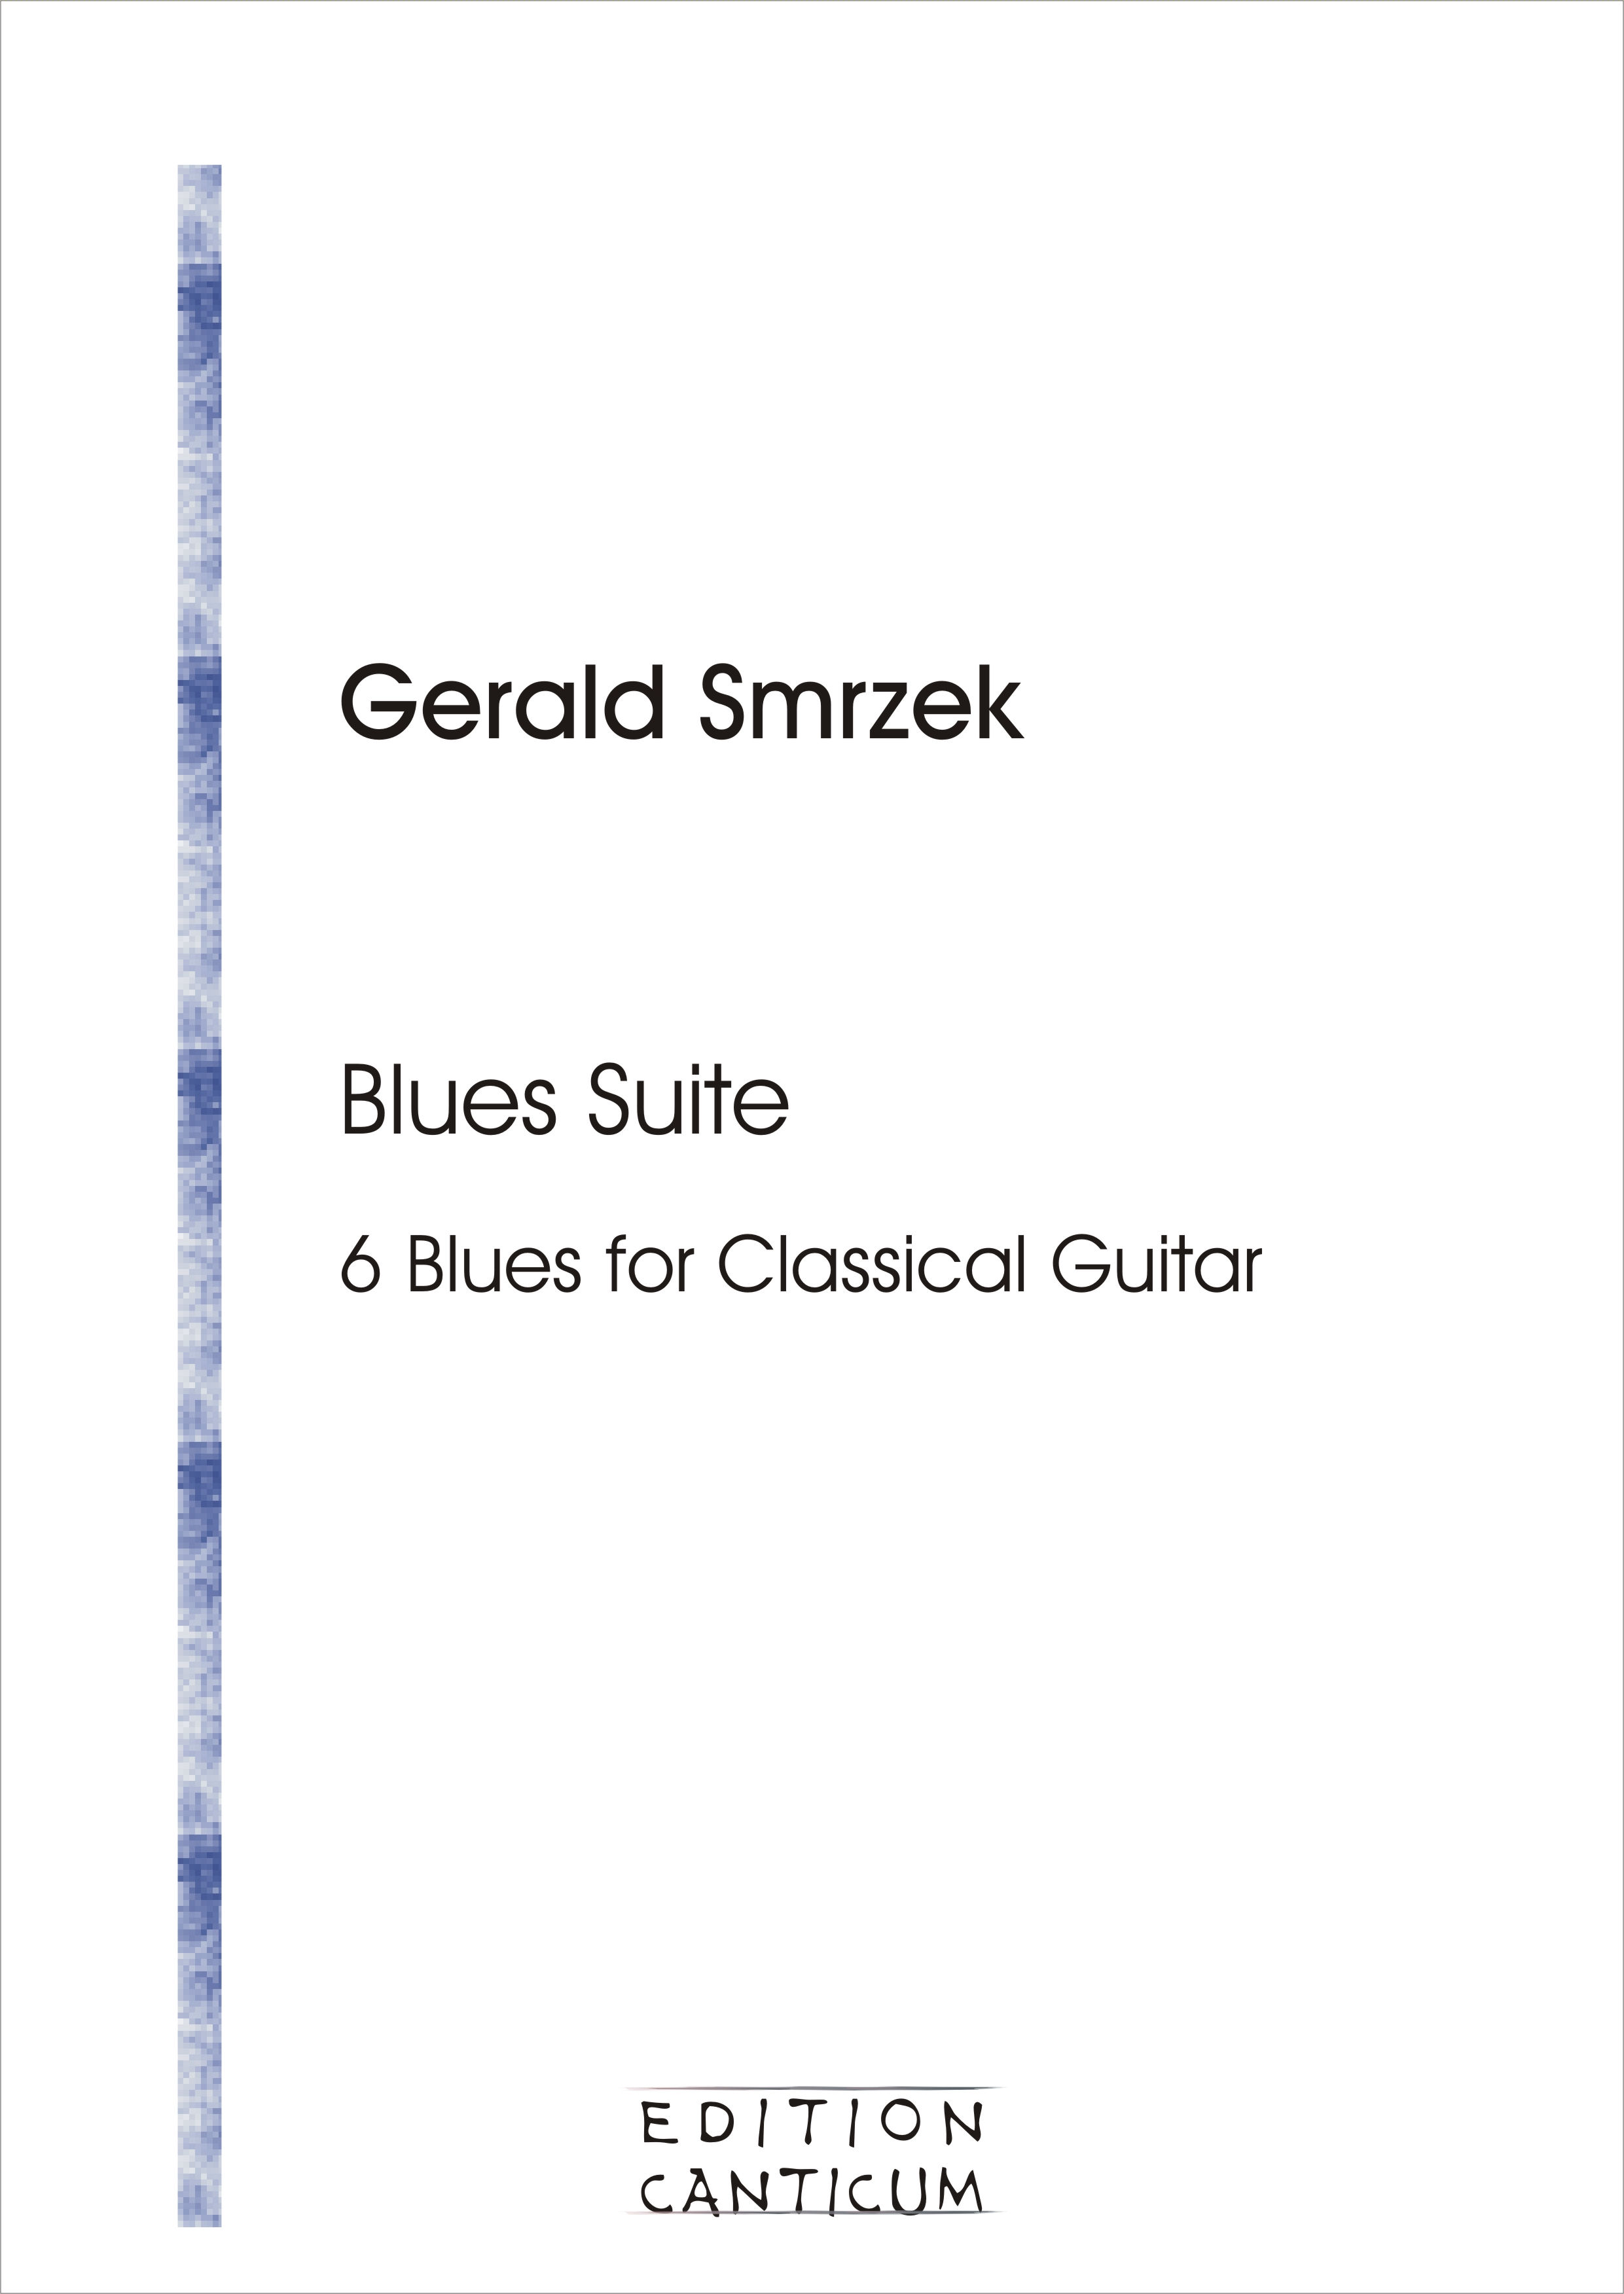 Blues Suite - 6 Blues for Classical Guitar